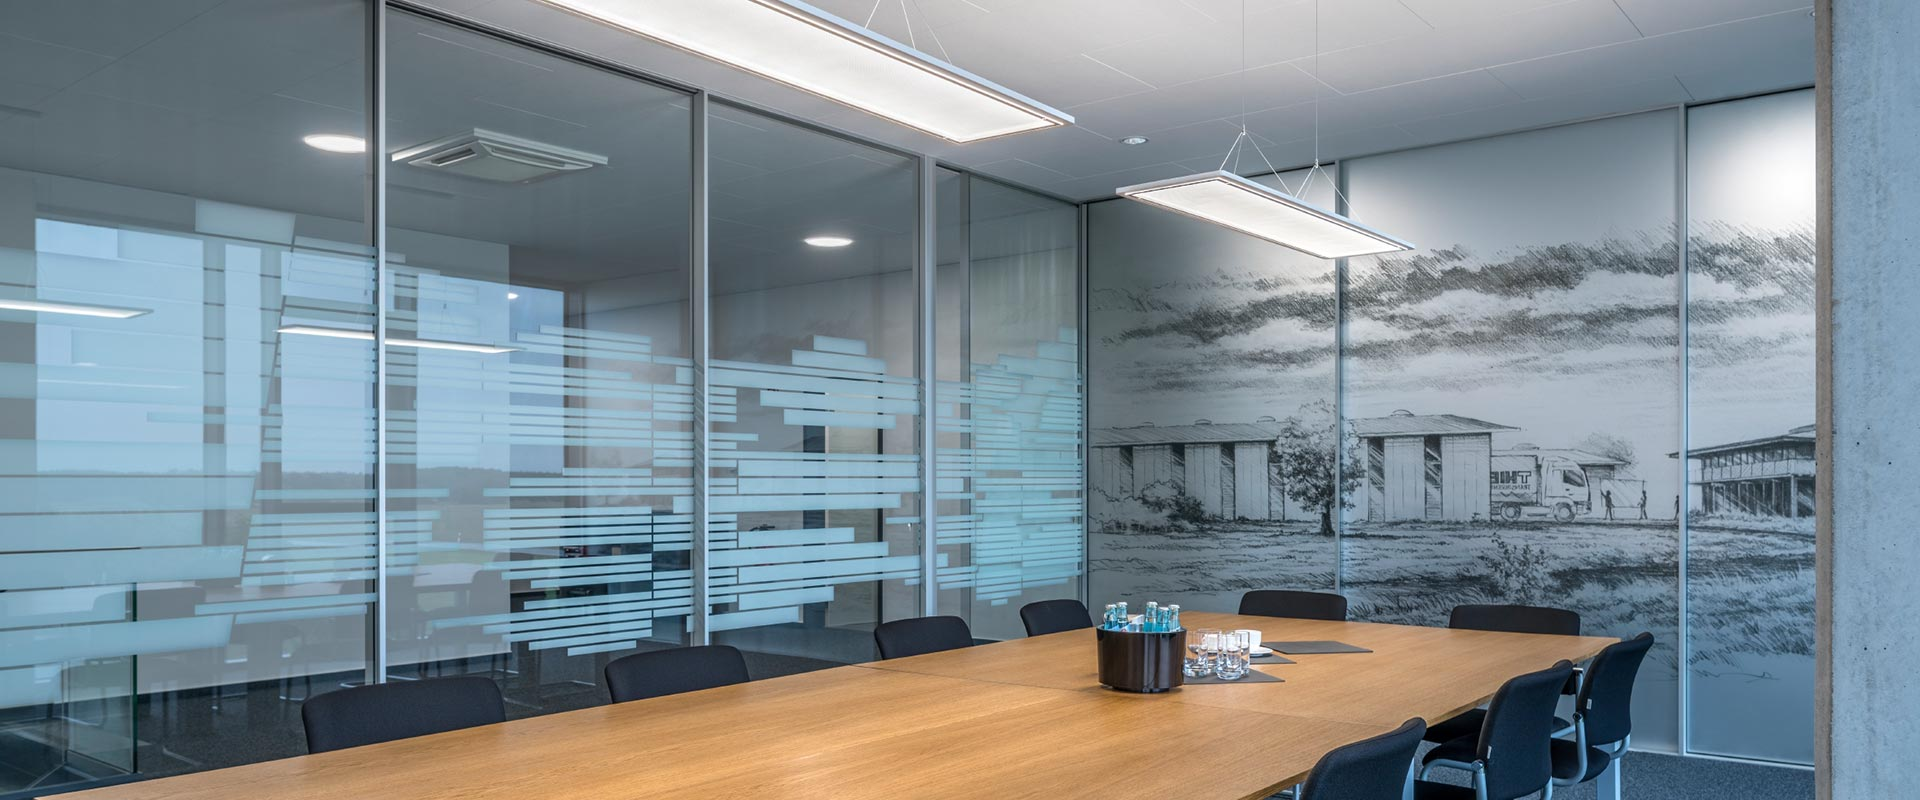 Conference Room Lighting Meeting Trilux